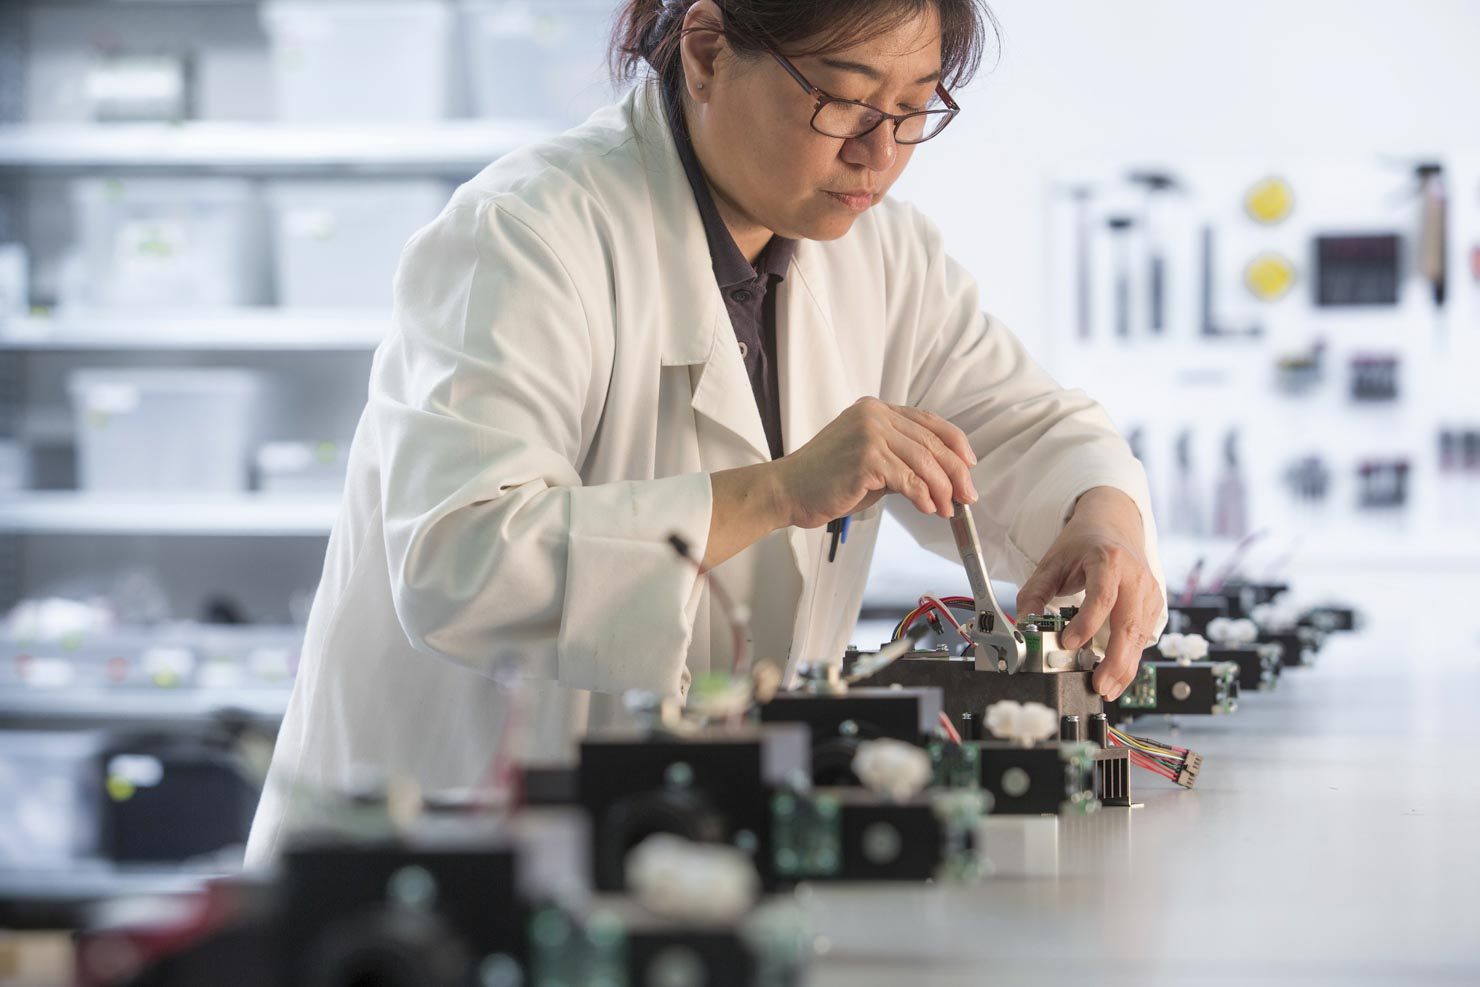 Electronics manufacturing technician working on equipment in a laboratory